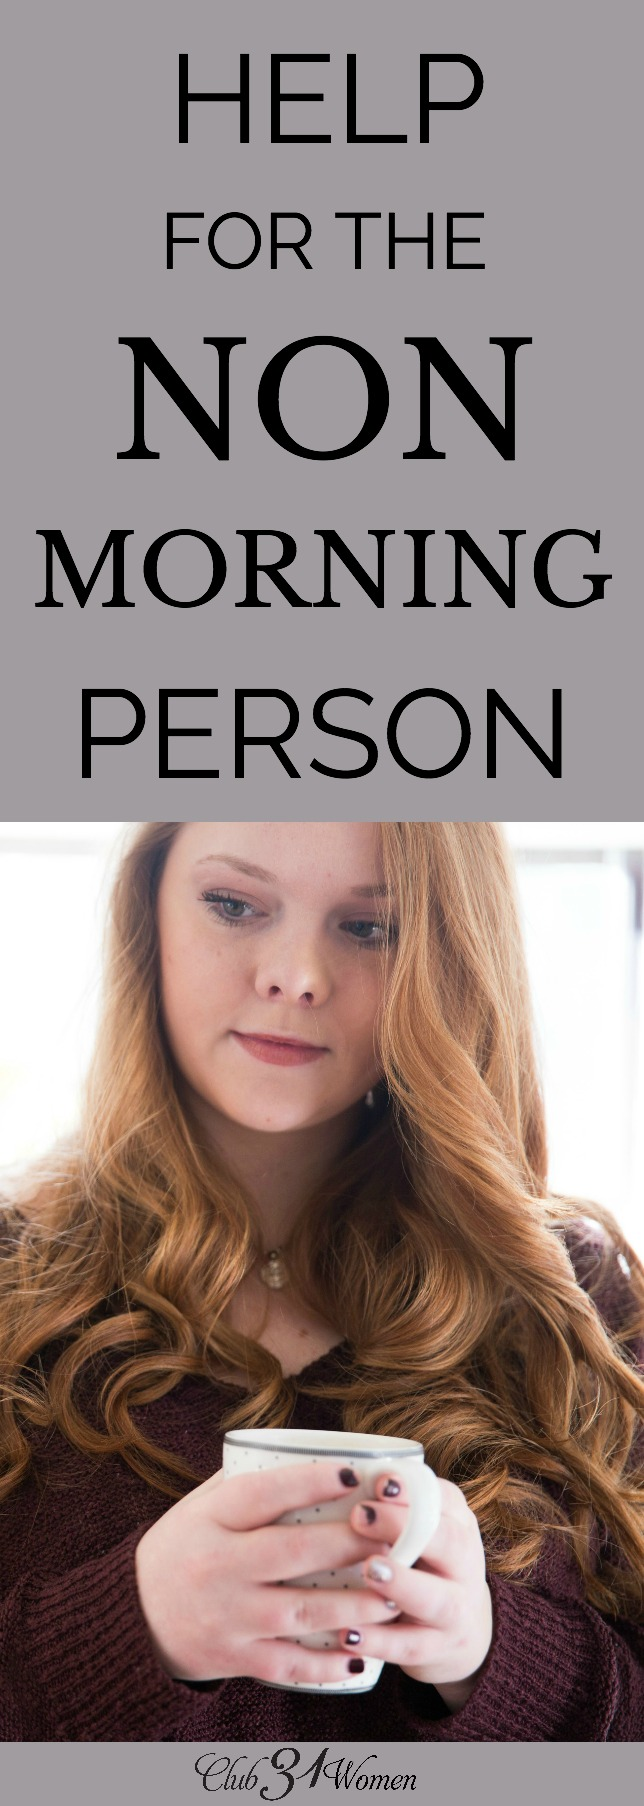 What can you do when you want to spend time in God's Word early, but you're not a morning person? Here are some ideas from a non-morning person! via @Club31Women